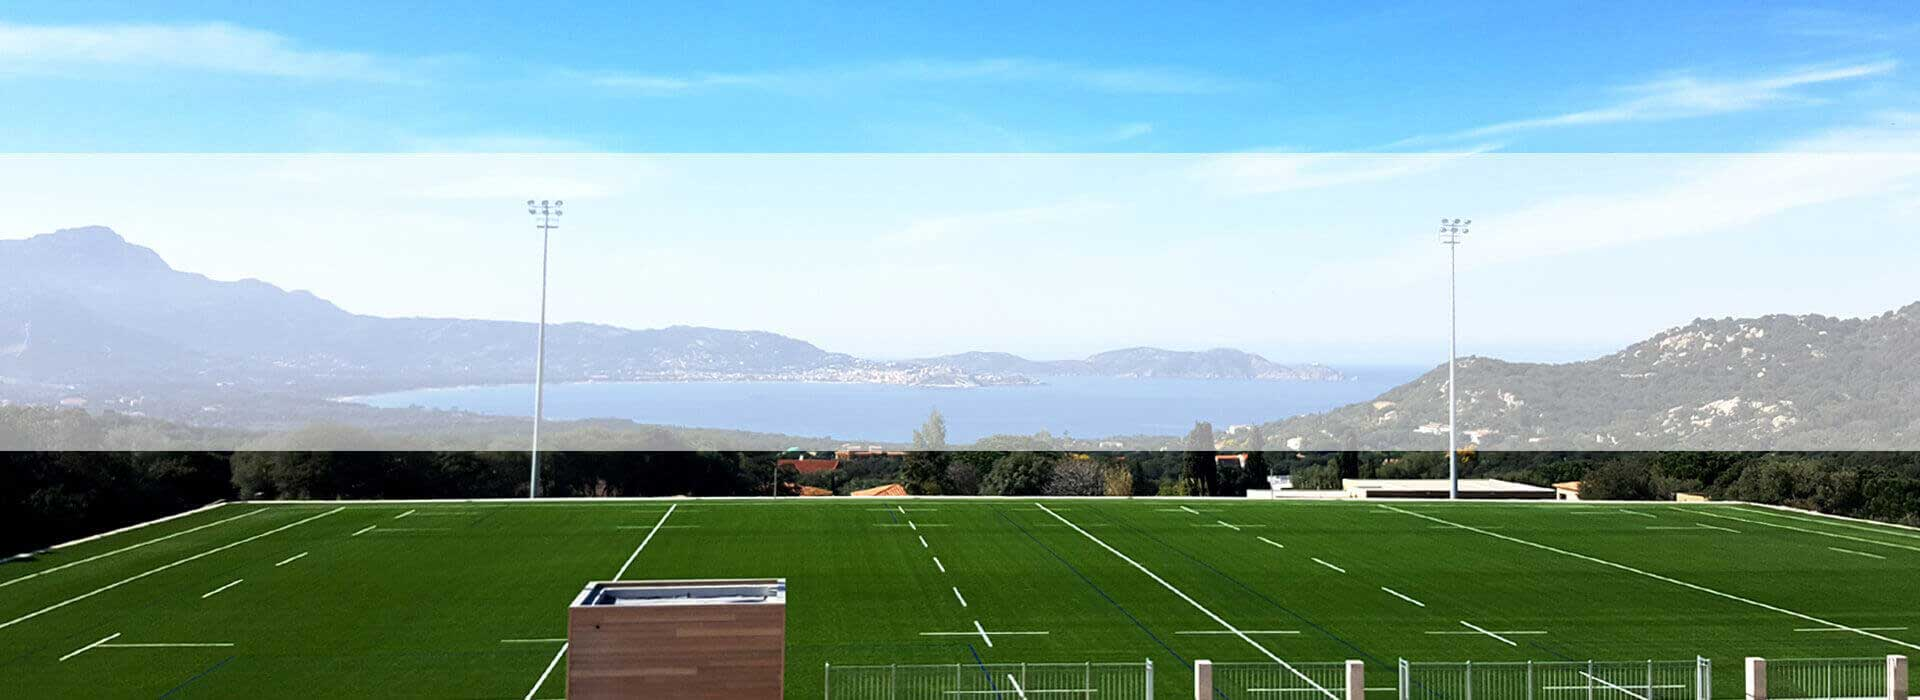 ccgrass Artificial-turf-high playing performance rugby field Stade Municipal, France